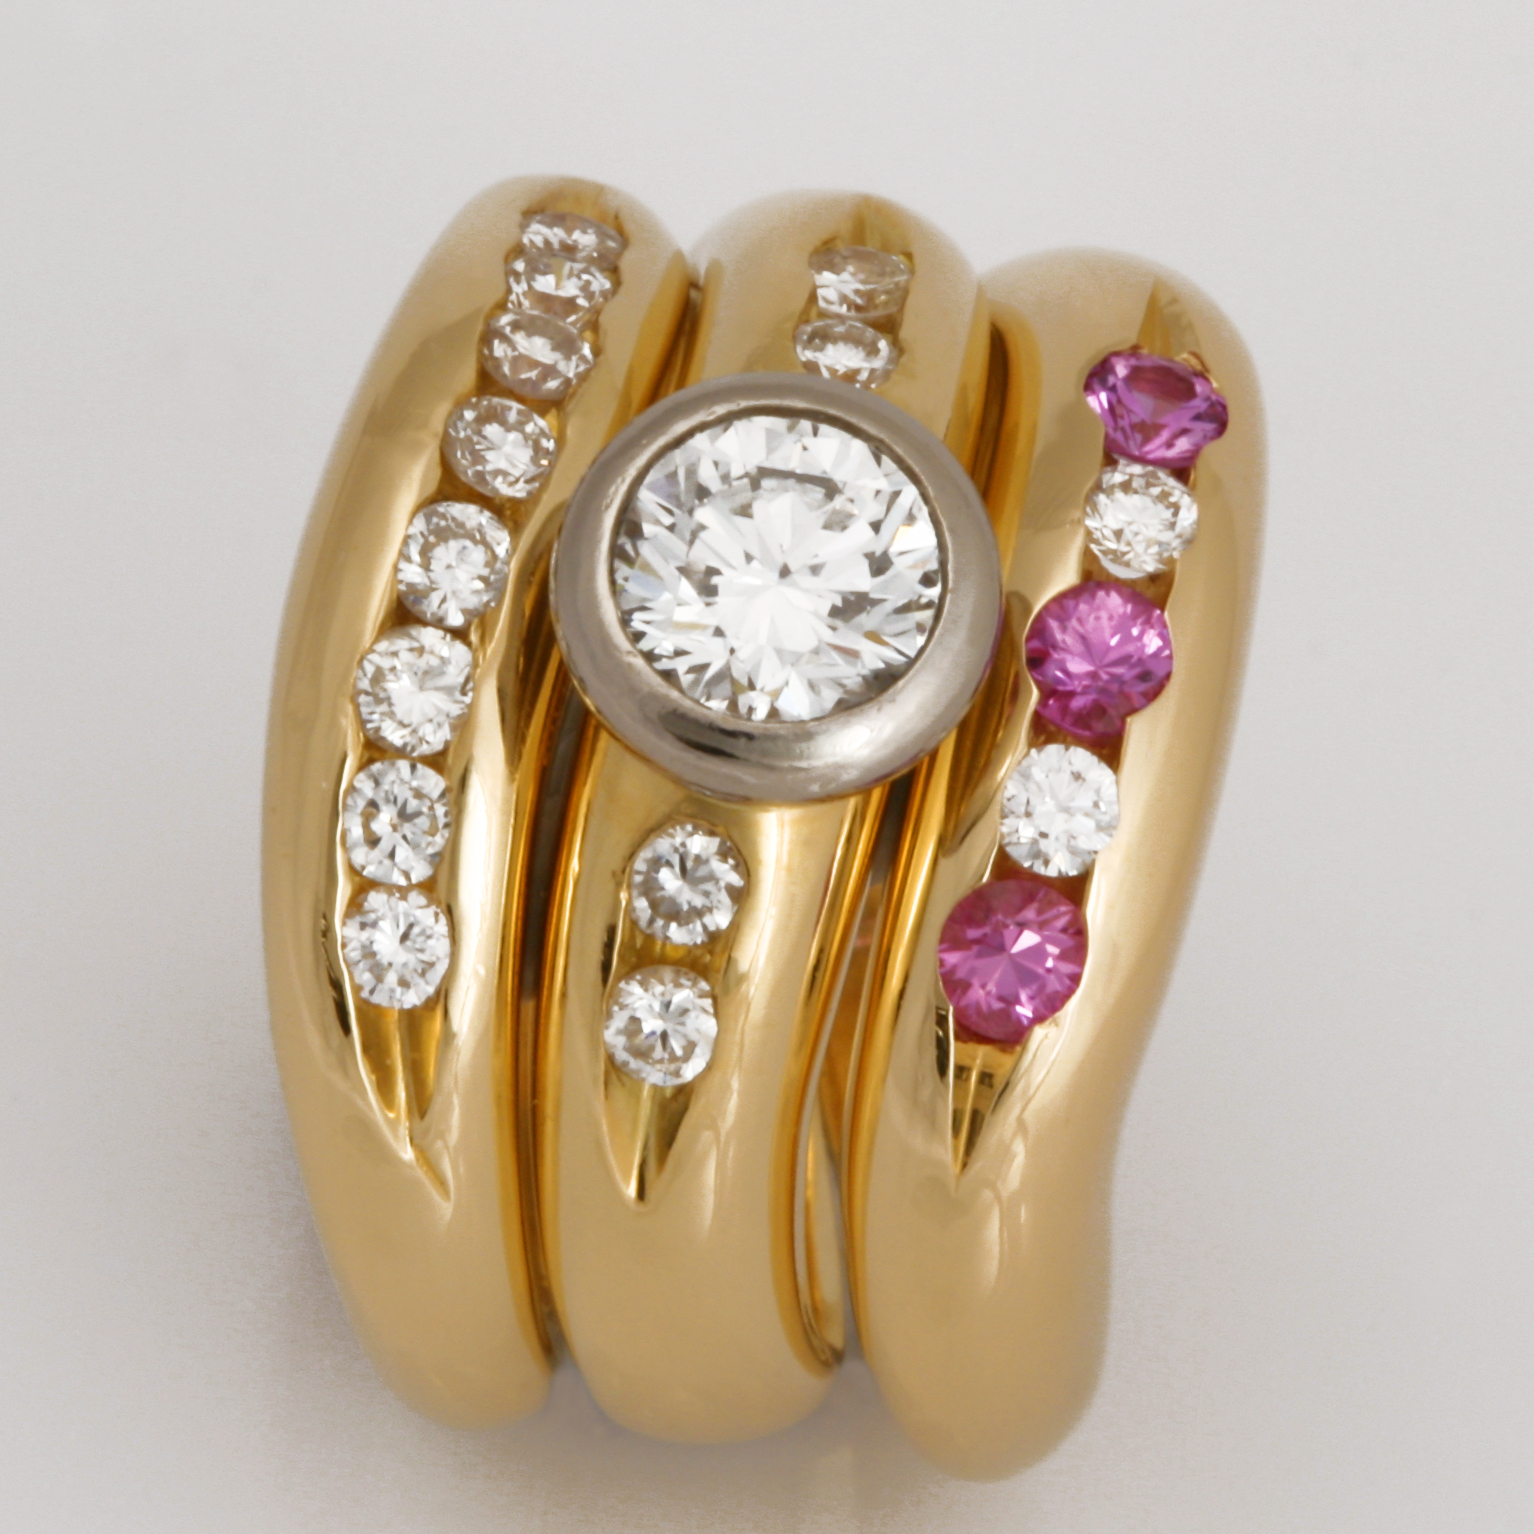 Handmade ladies 18ct yellow gold Eternity ring featuring pink sapphires and diamonds.